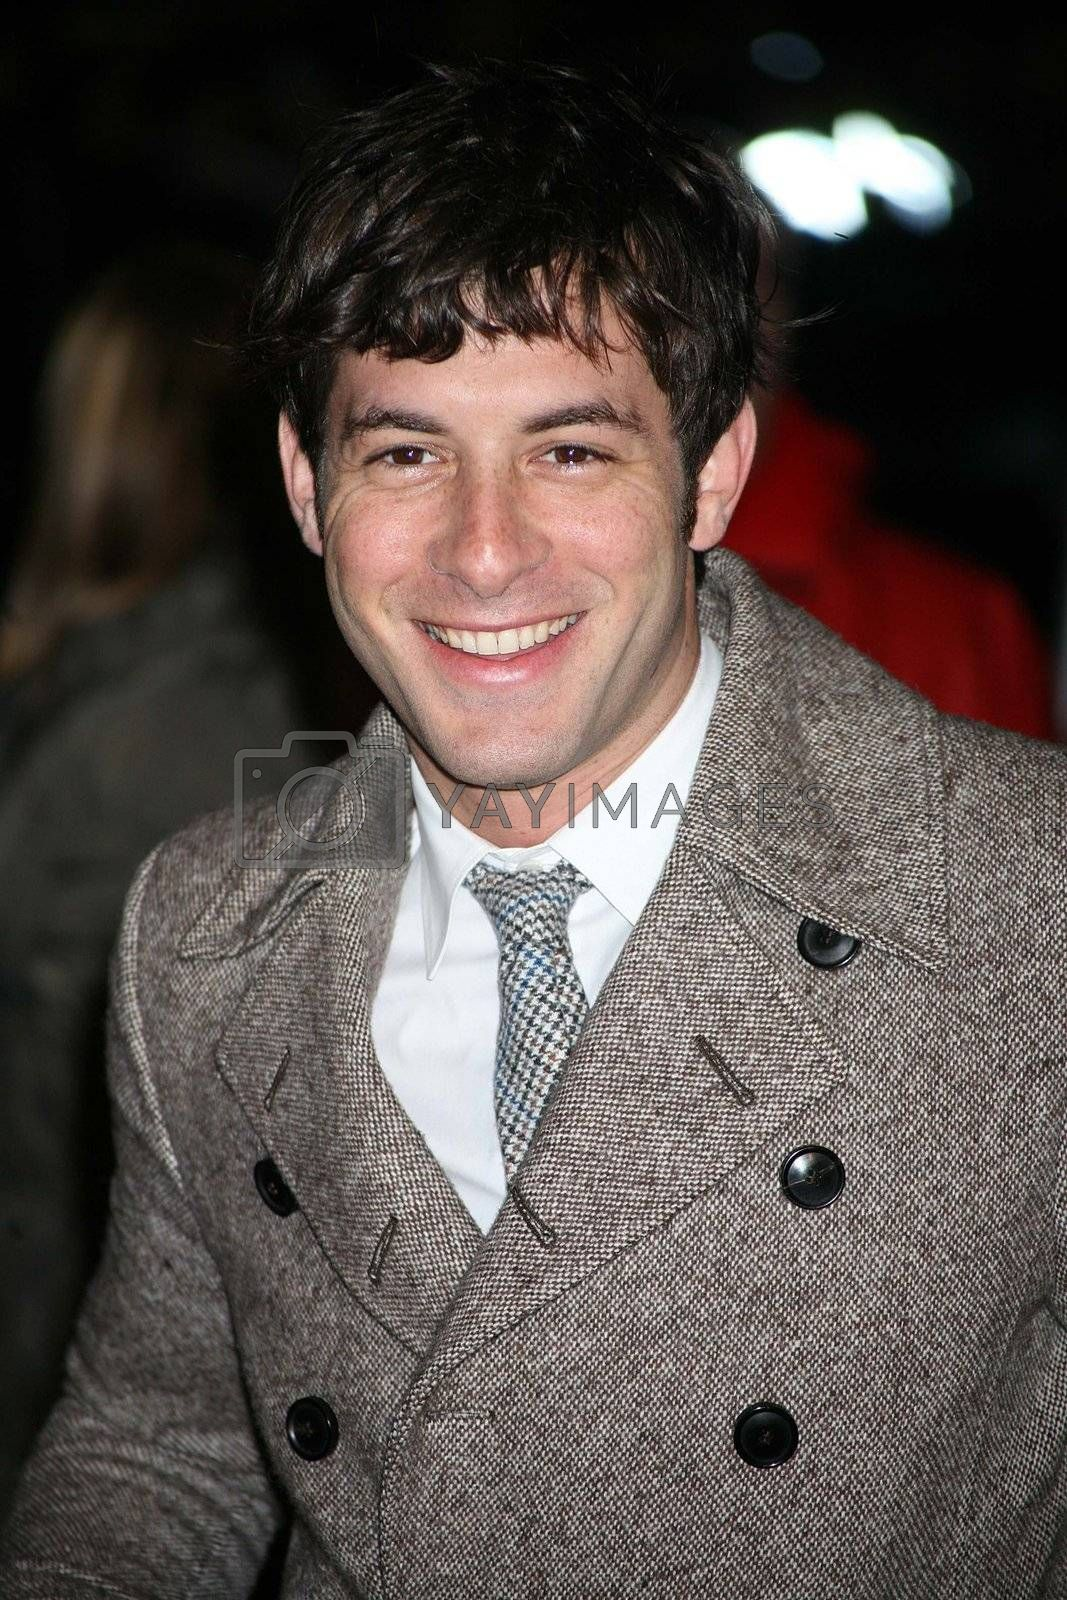 Arrivals at the European Premiere of 'Sweeney Todd' at the Odeon Leicester Square on January 10, 2008 in London, England.